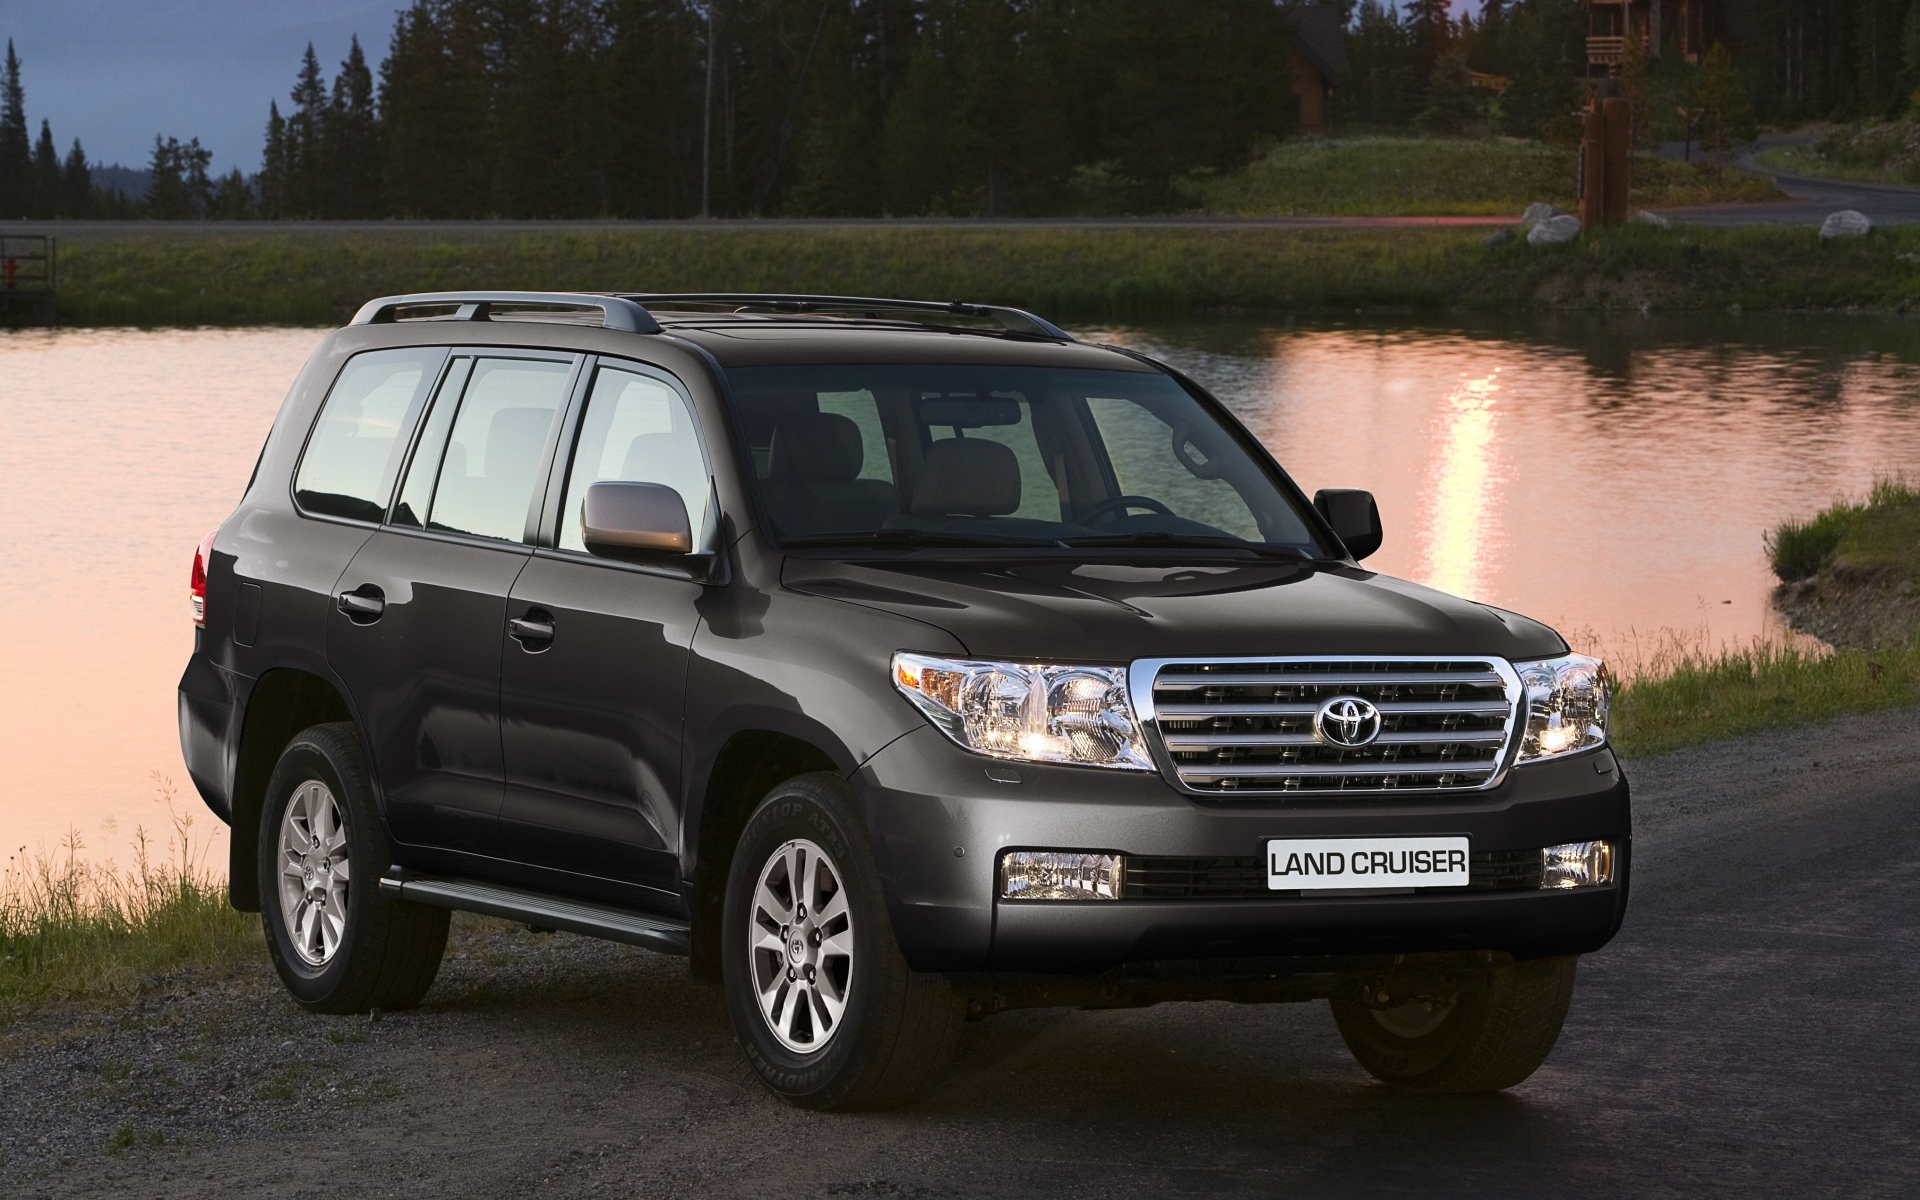 Wallpaper Of черный Toyota Land Cruiser 200 Background Hd